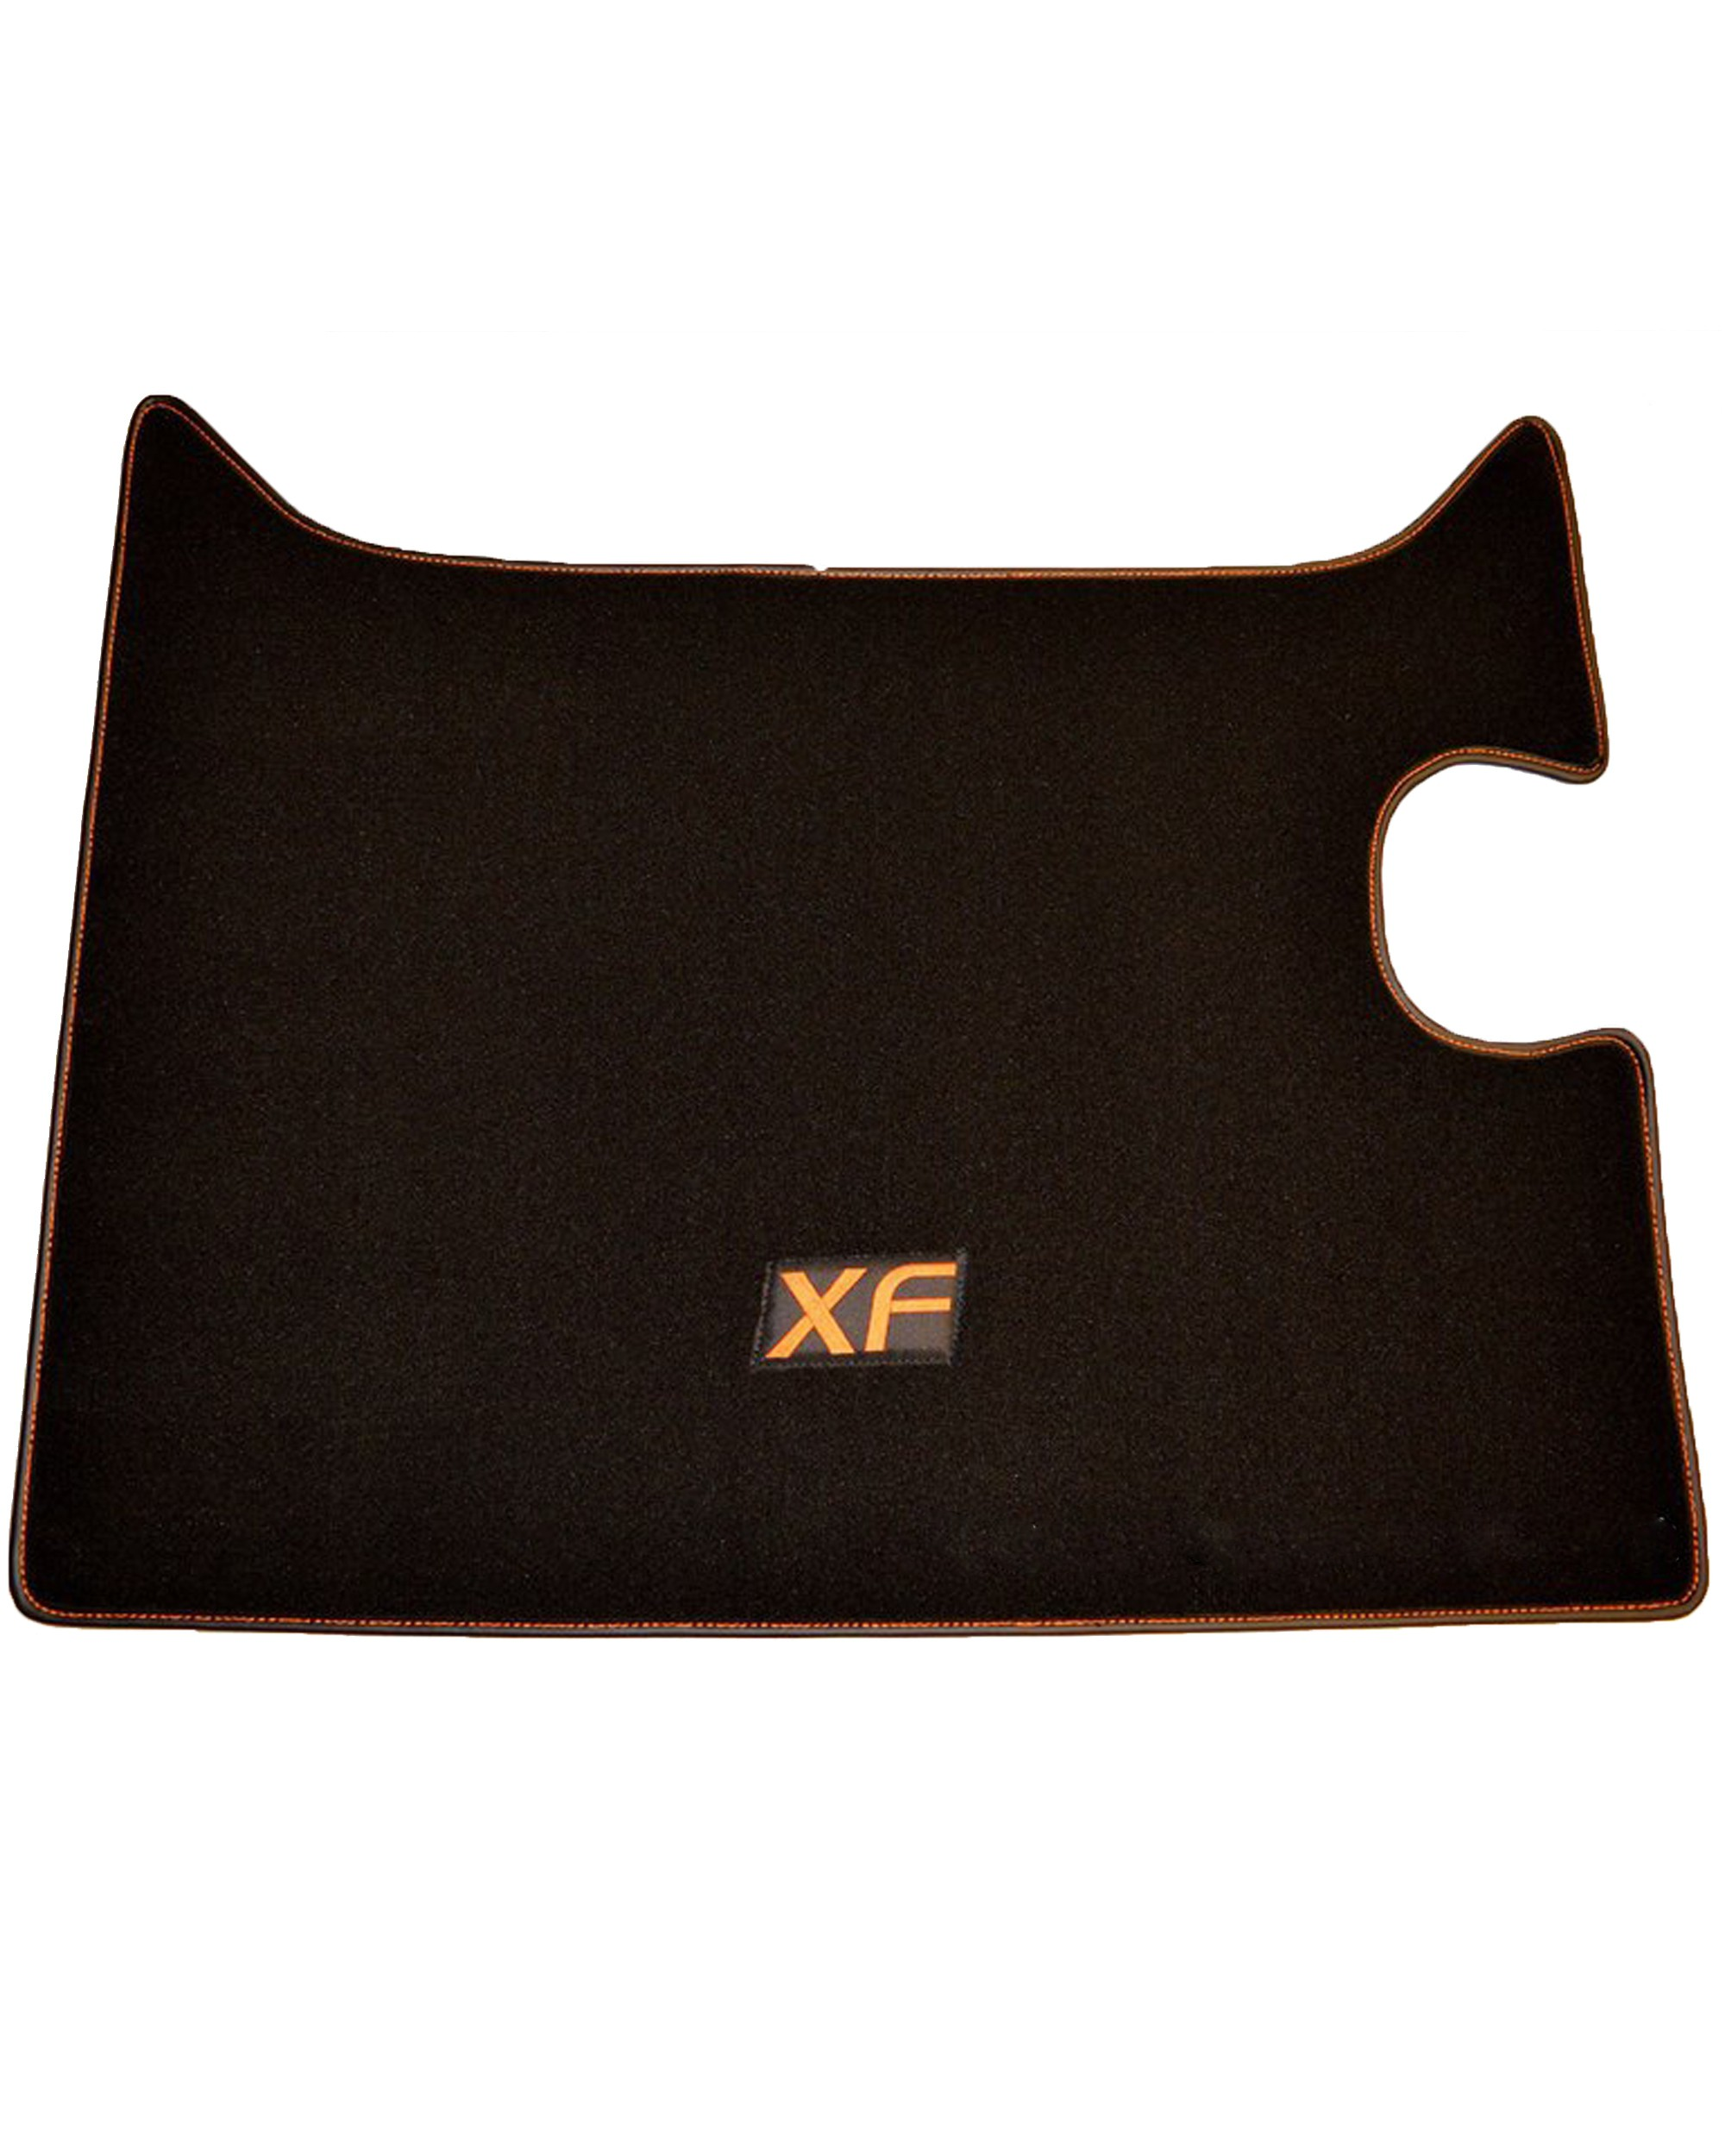 DAF XF Orange Edition floor mat